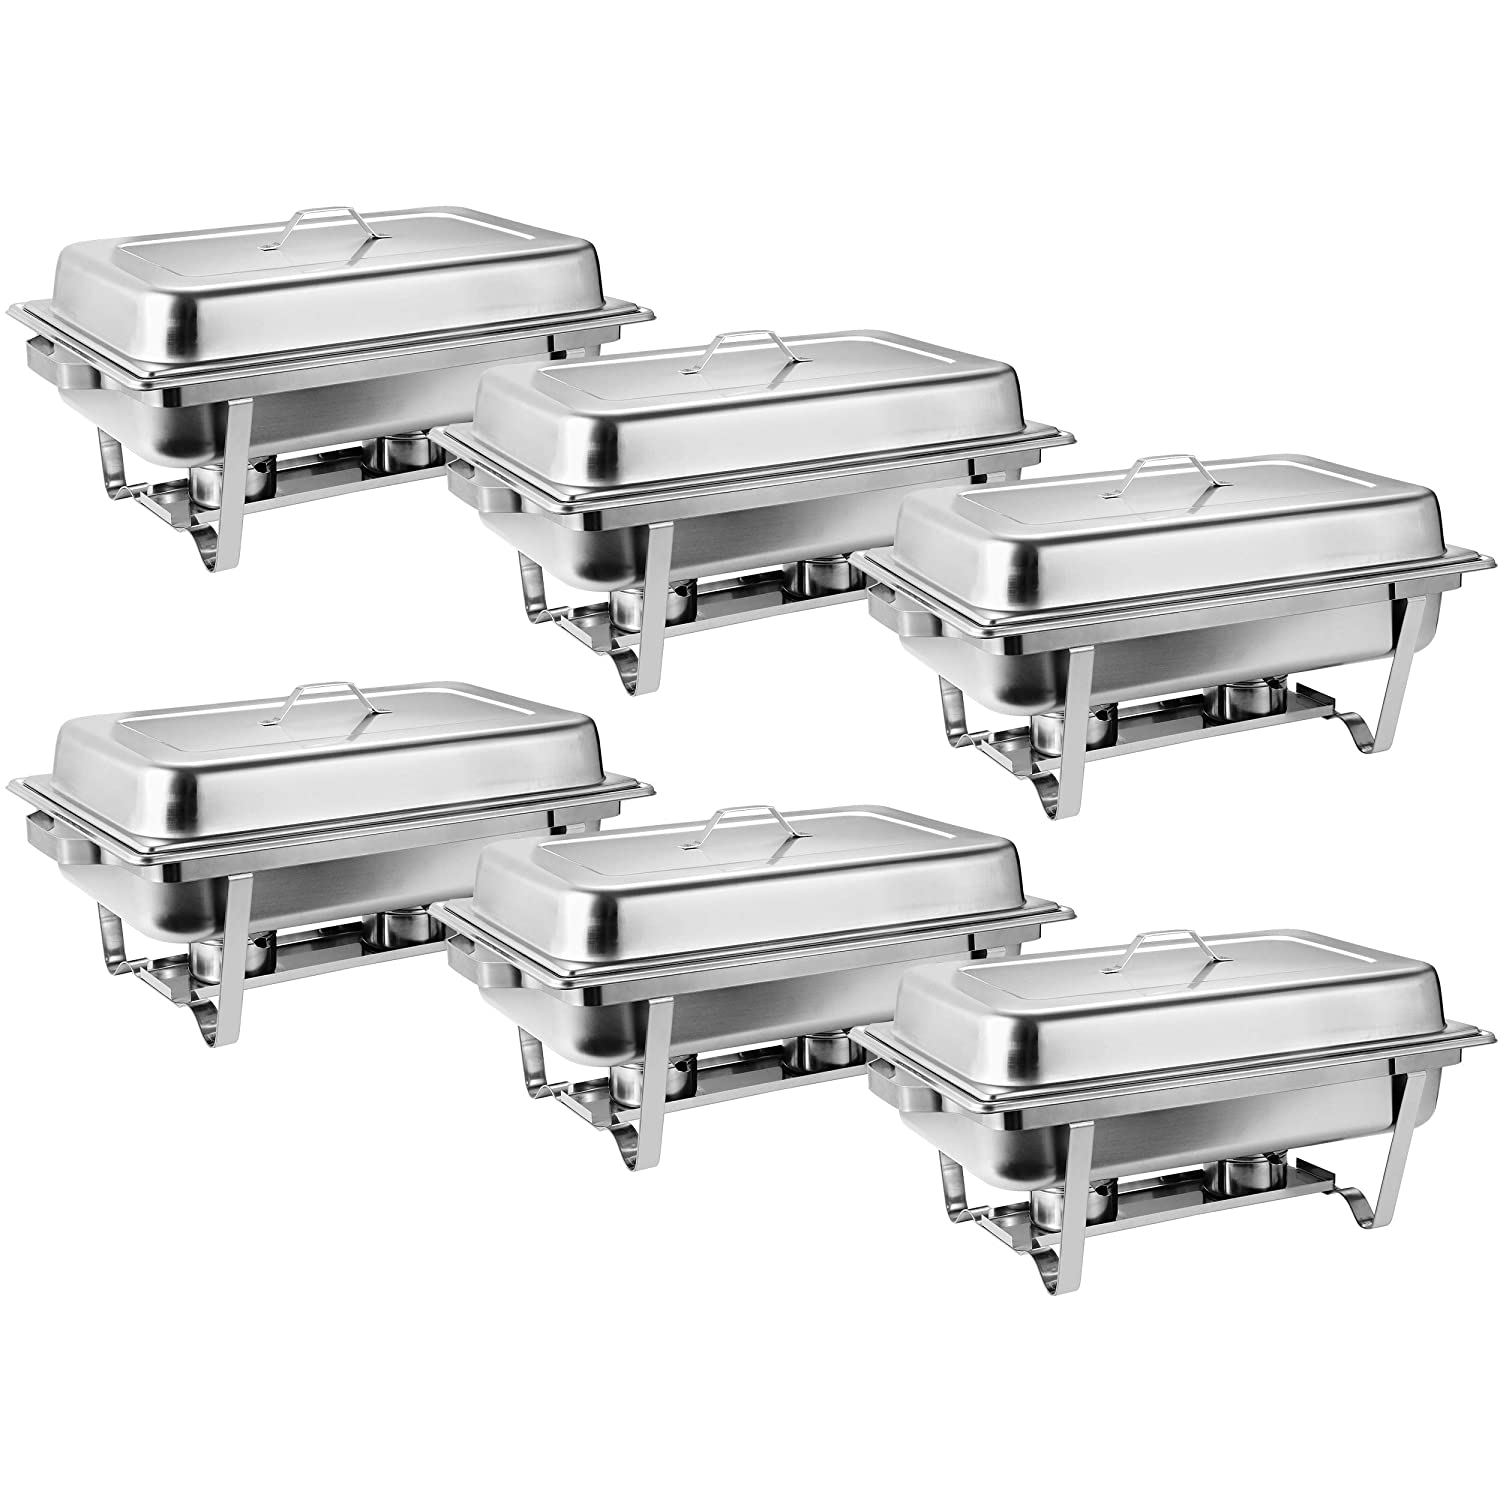 SUPER DEAL 8 Qt Stainless Steel 6 Pack Full Size Chafer Dish w/Water Pan, Food Pan, Fuel Holder and Lid For Buffet/Weddings/Parties/Banquets/Catering Events (6)